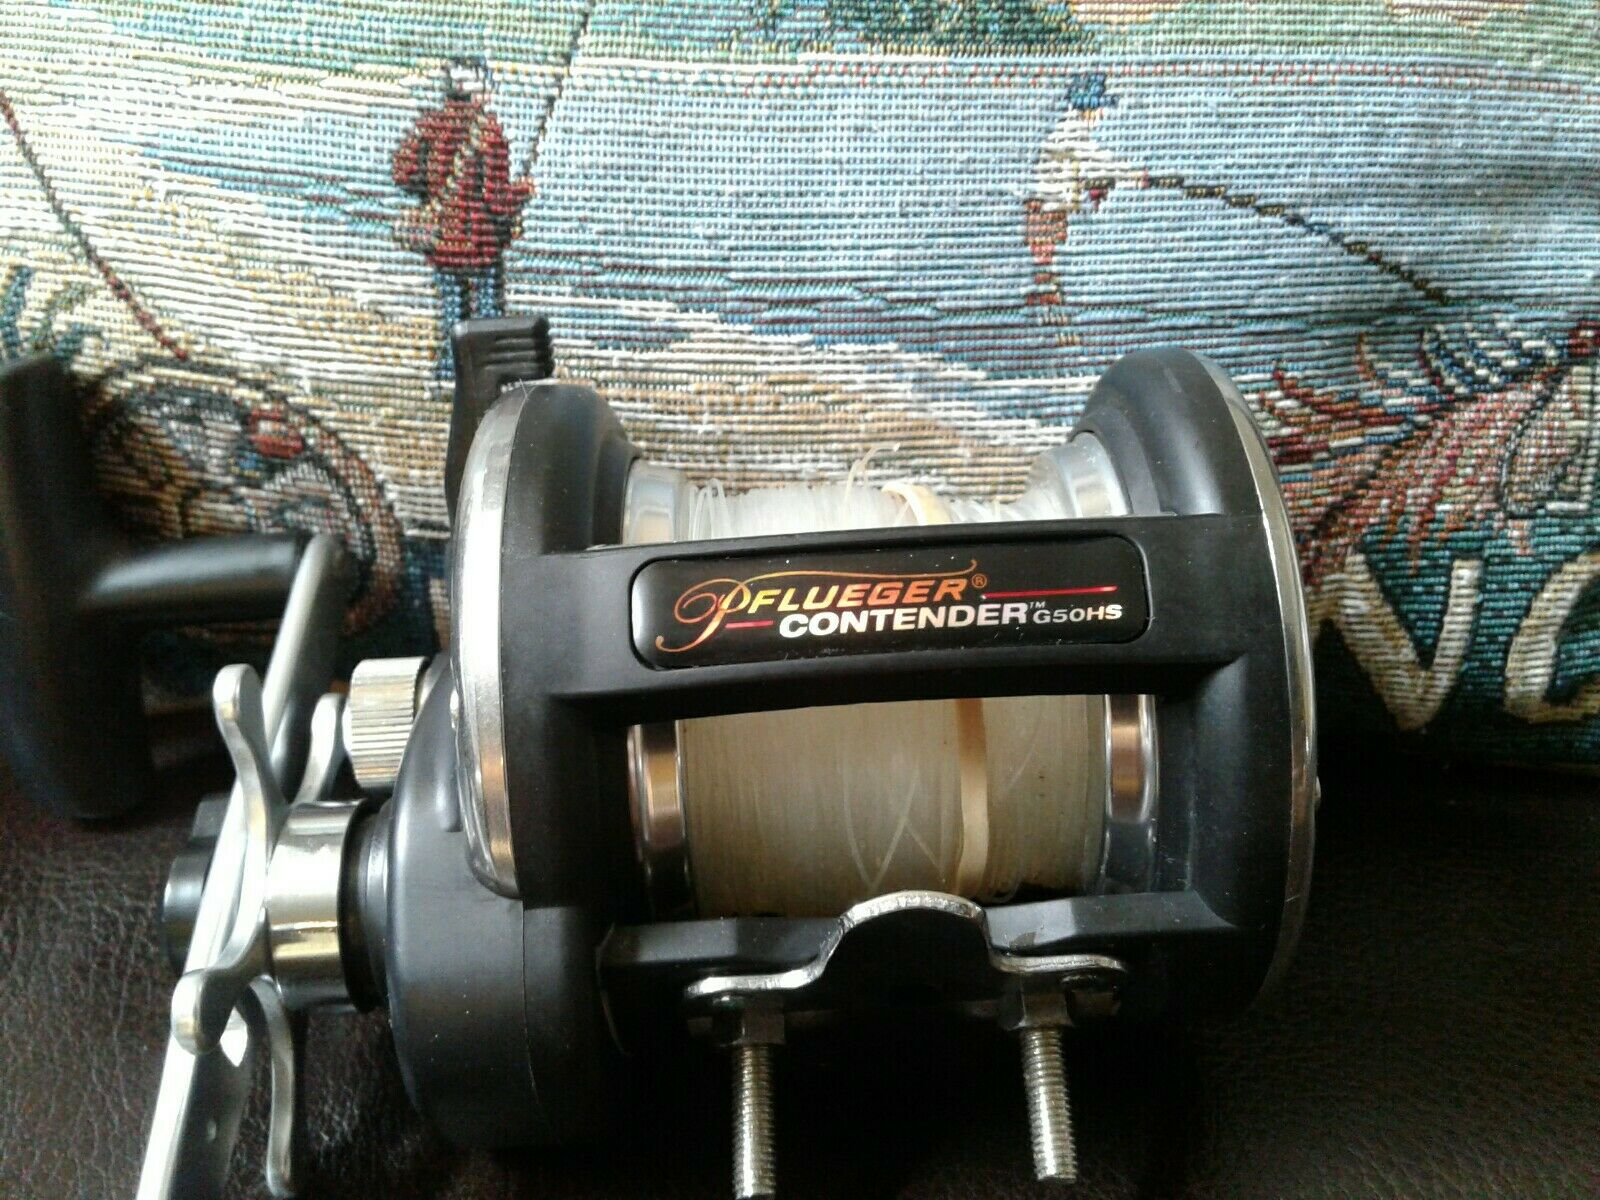 Pflueger Contender G50HS Conventional Fishing Reel